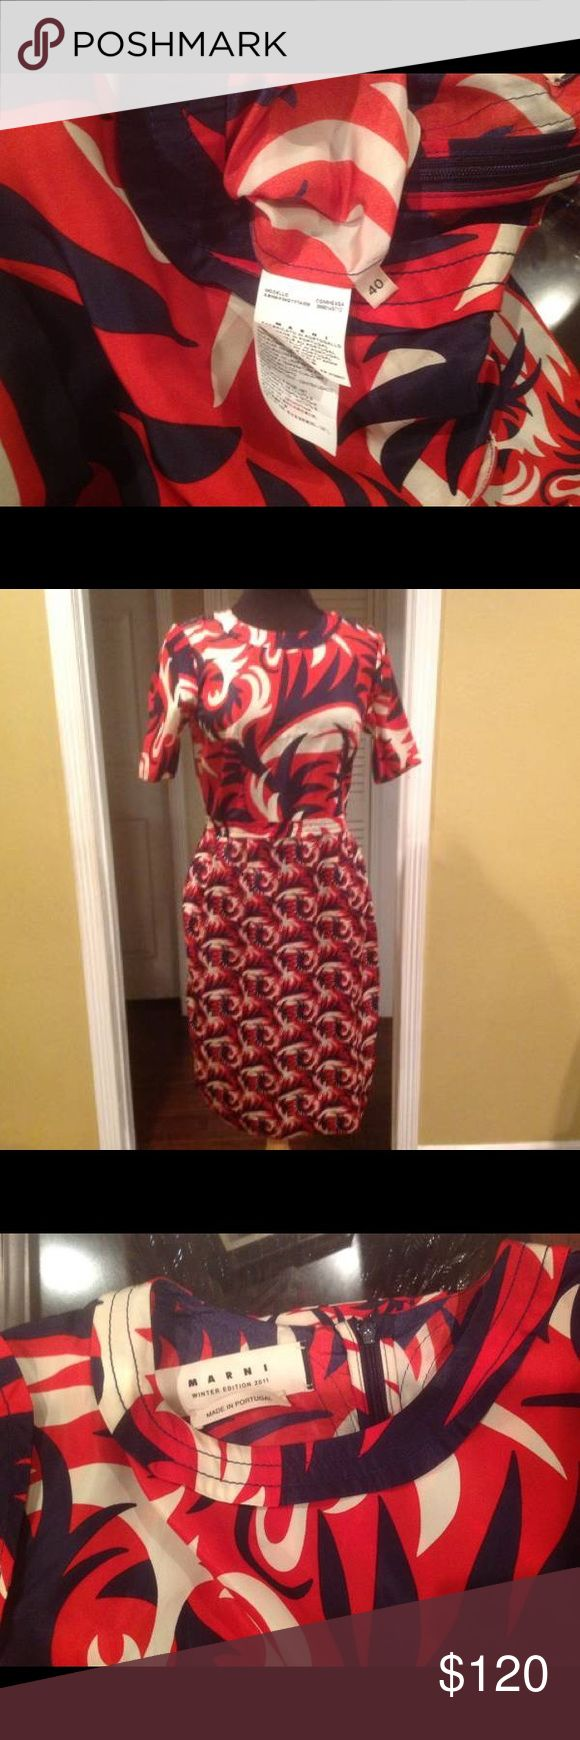 Marni red blue Dress A vintage red and blue Marni dress. In great condition. Marni Dresses Midi